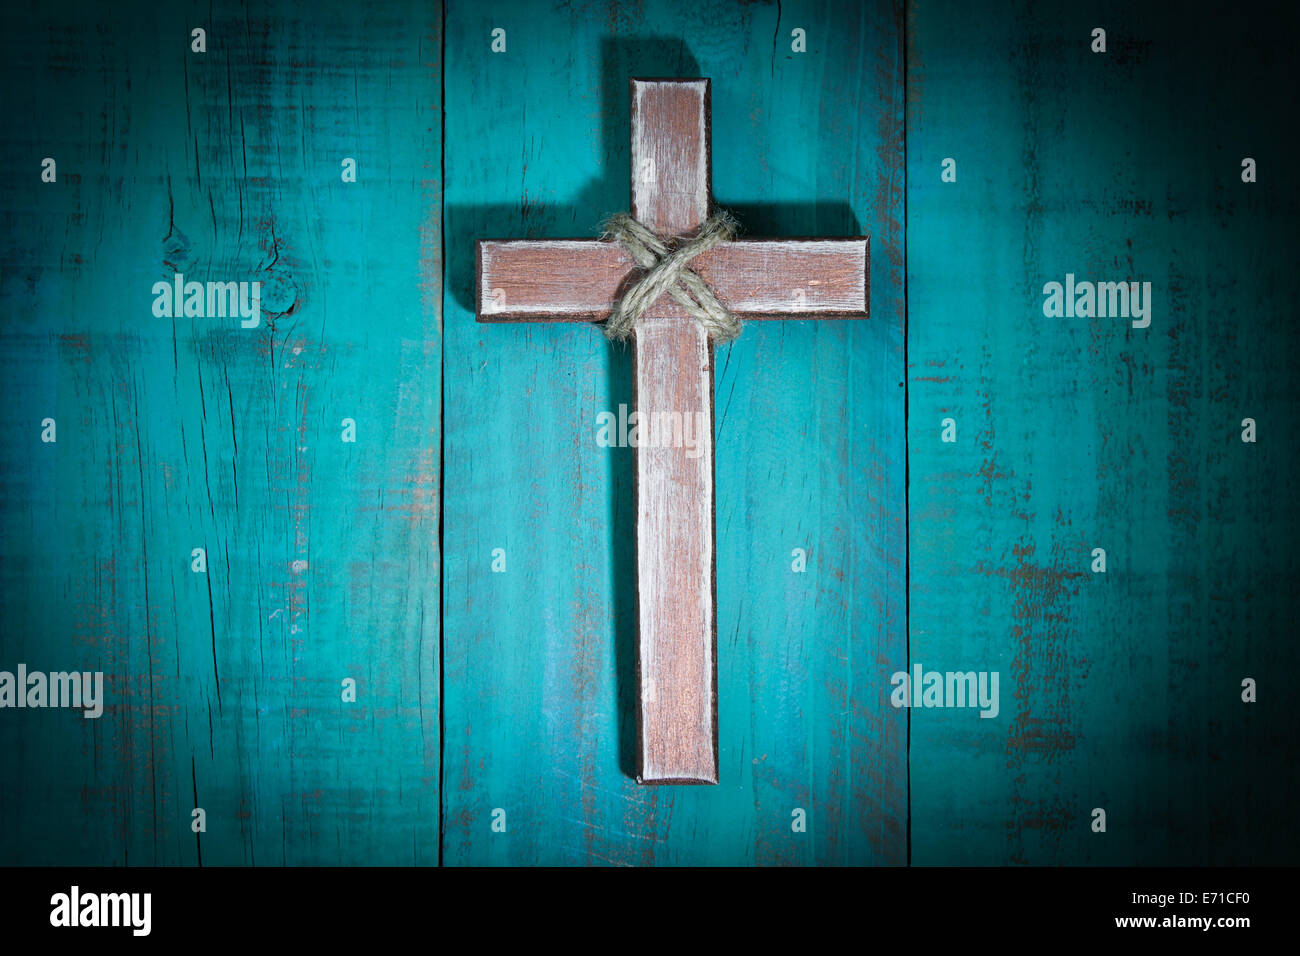 Spotlight On Rugged Wooden Cross Hanging Antique Teal Blue Rustic Wood Background